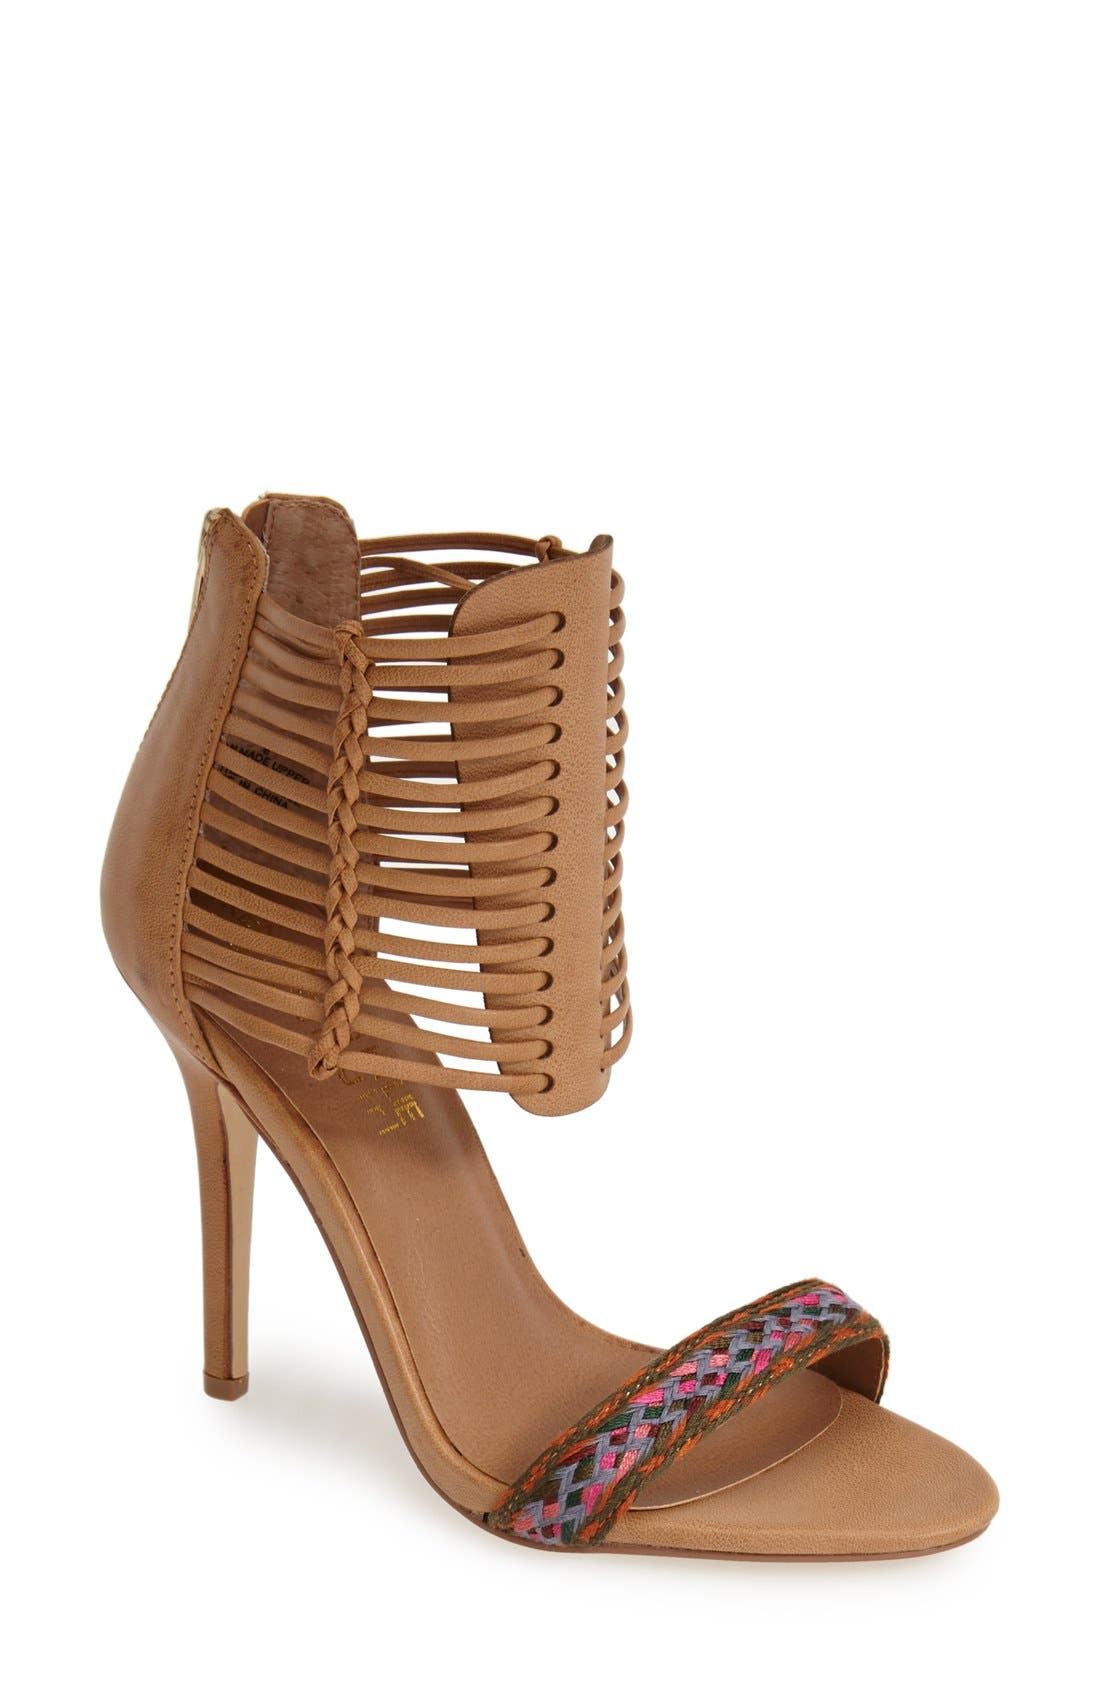 Alternate Image 1 Selected - KENDALL + KYLIE Madden Girl 'Demie' Sandal (Women)